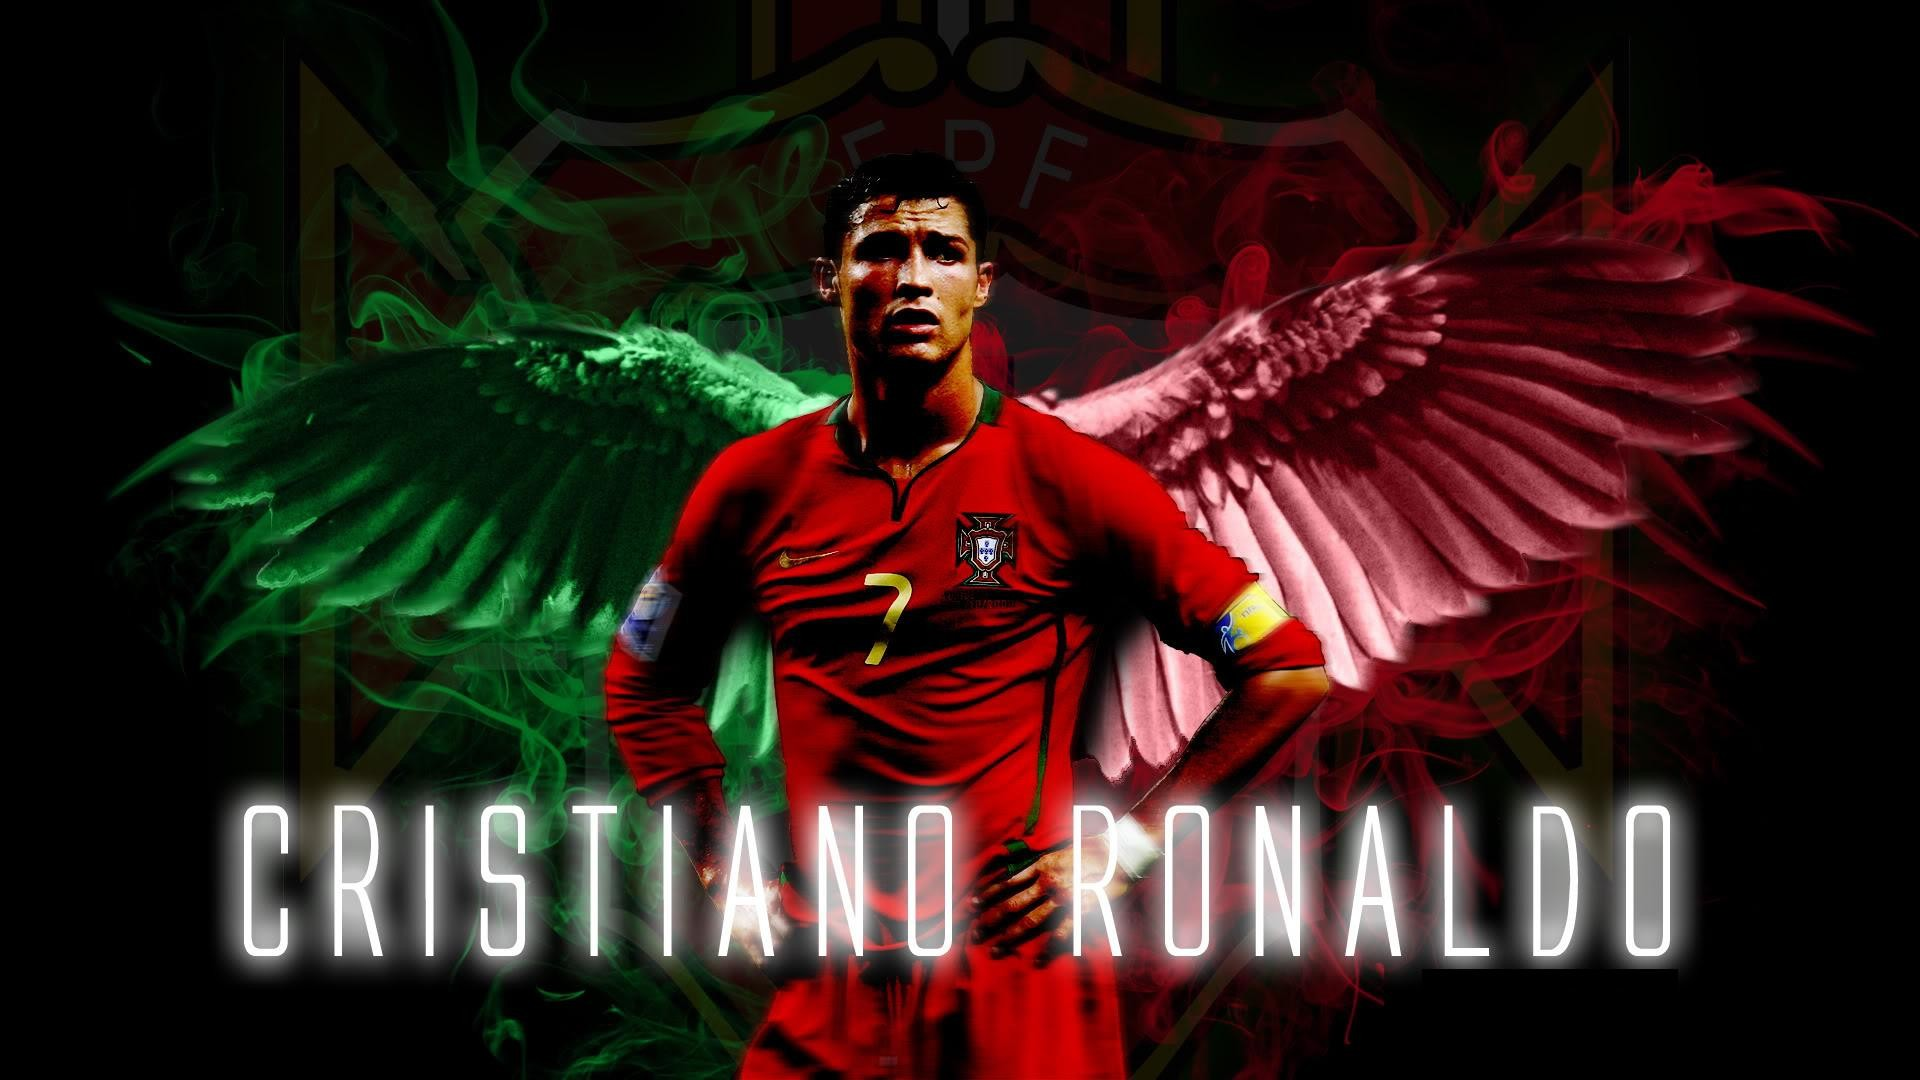 Cristiano Ronaldo Portugal Hd Wallpapers Desktop And: Best Soccer Players Wallpaper (67+ Images